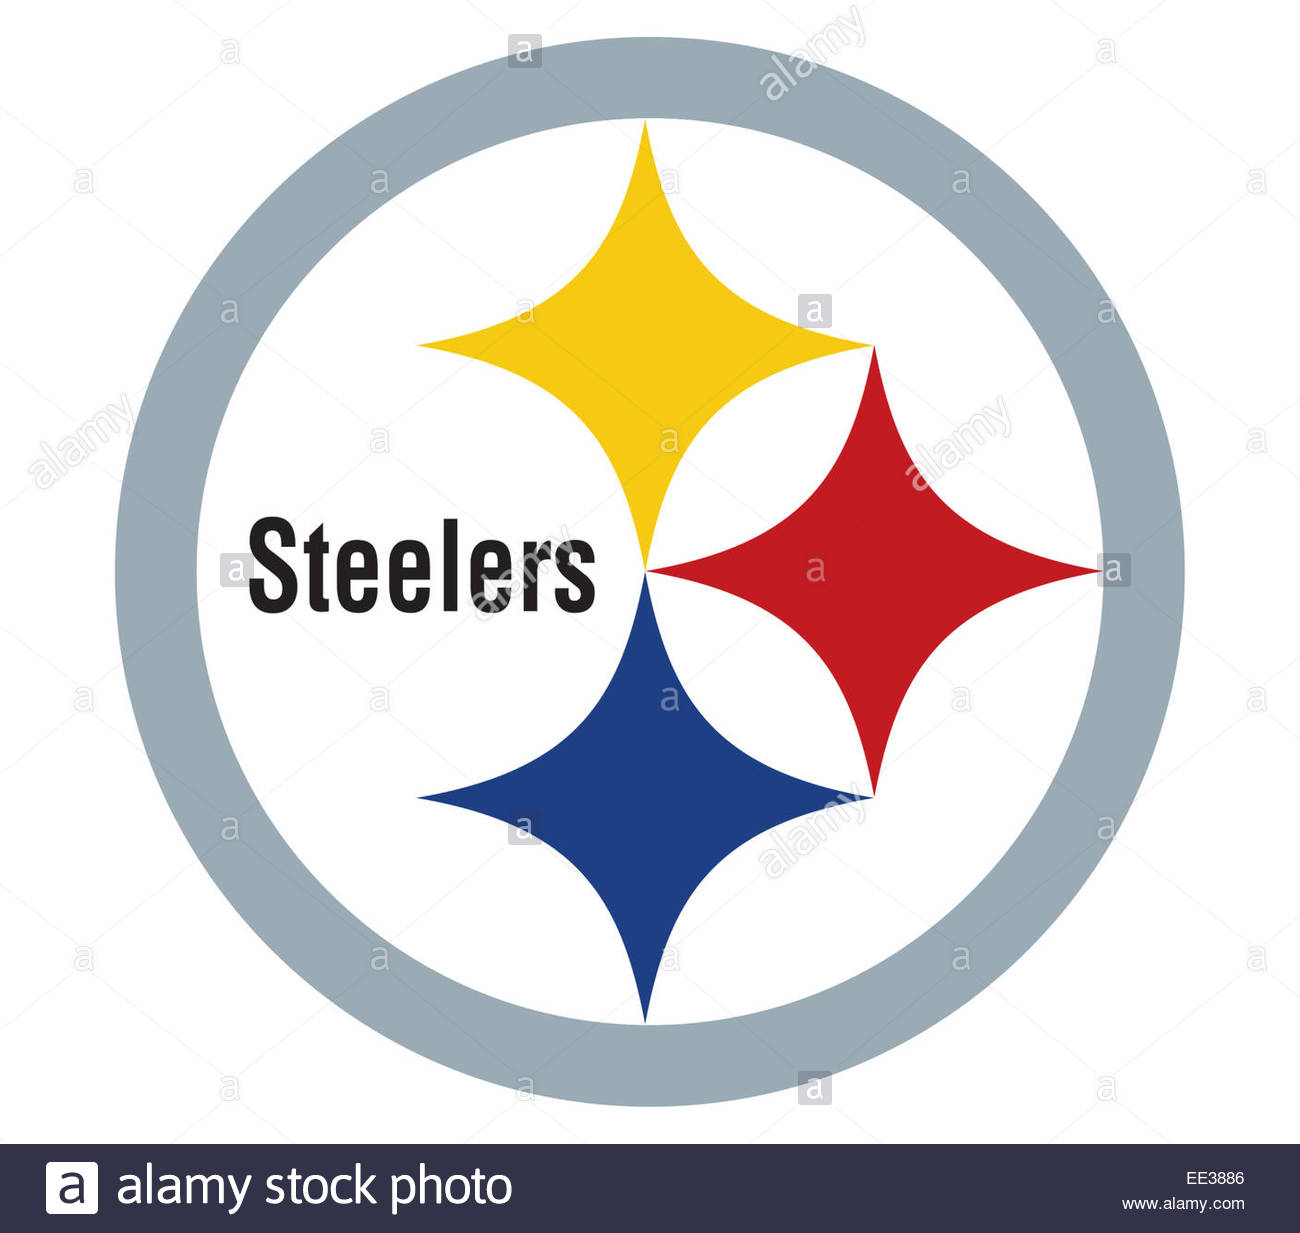 be3885dca Pittsburgh Steelers icon sign Stock Photo  77519014 - Alamy